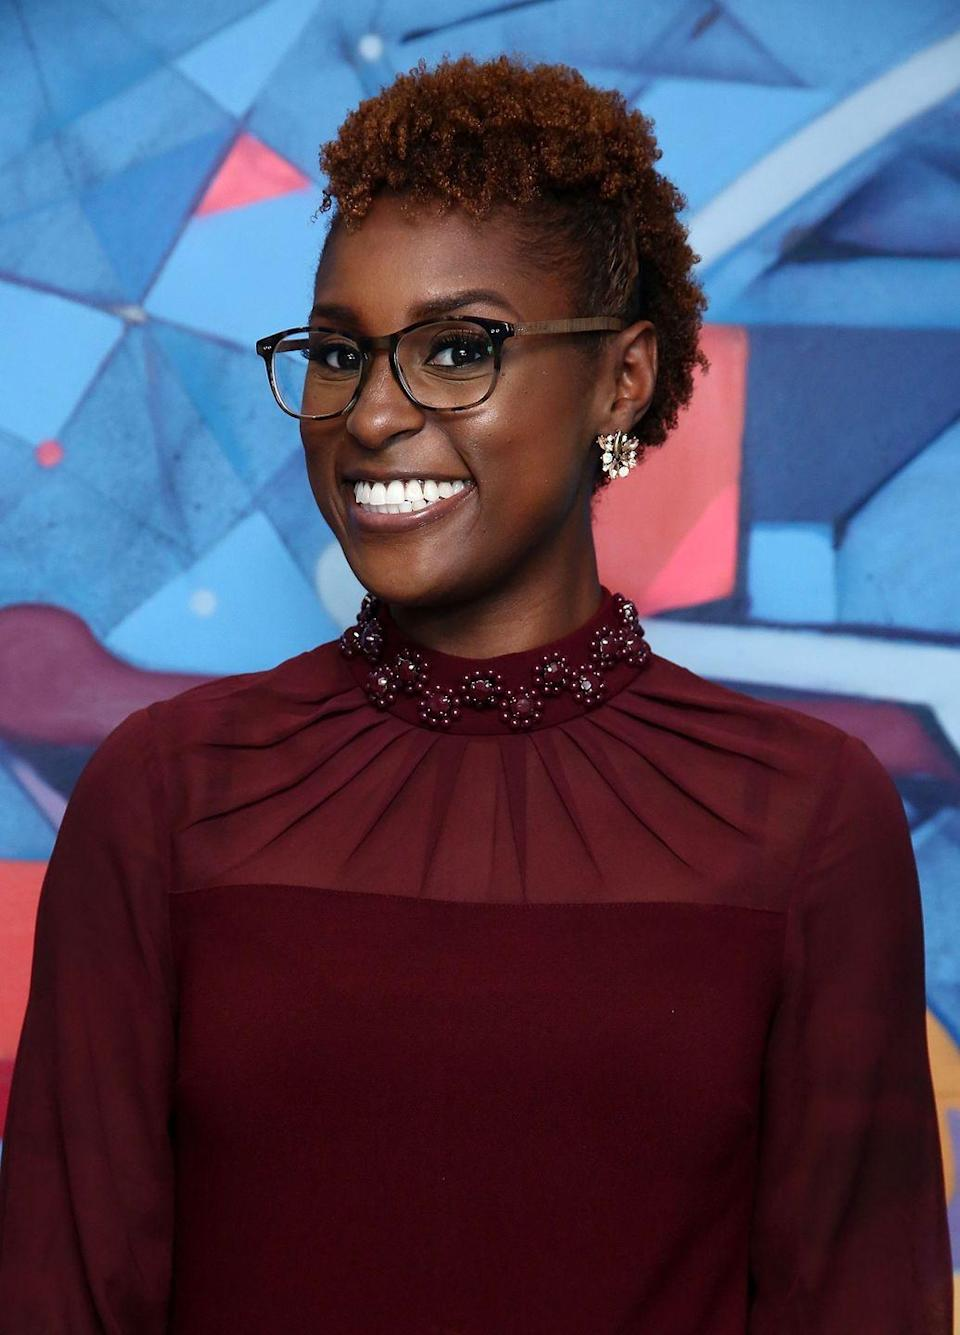 <p>Have some fun with your TWA by pinning or braiding the sides into a cute fro-hawk like <strong>Issa Rae</strong>'s.</p>